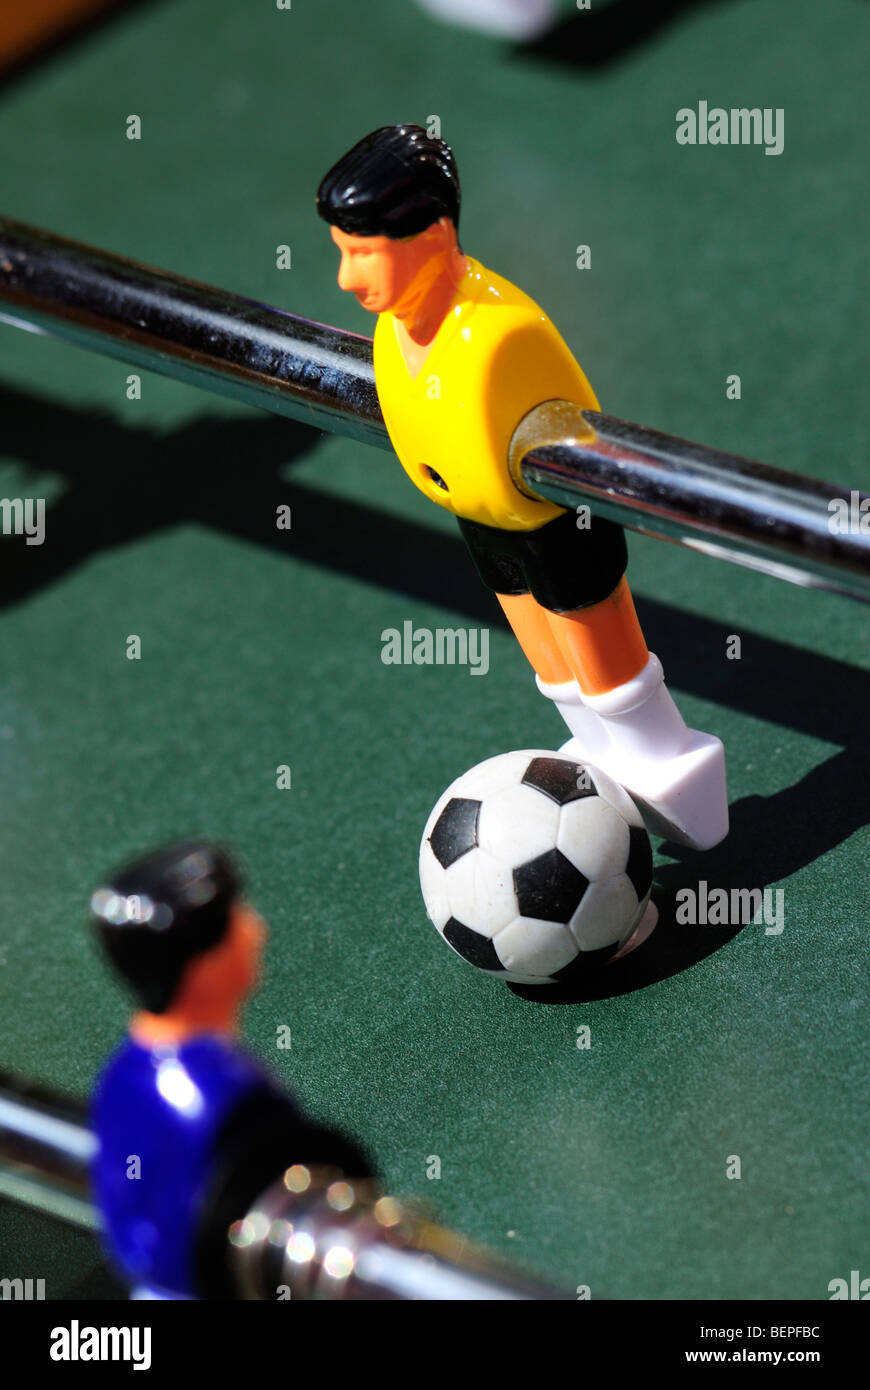 Table Football - August 2009 - Stock Image